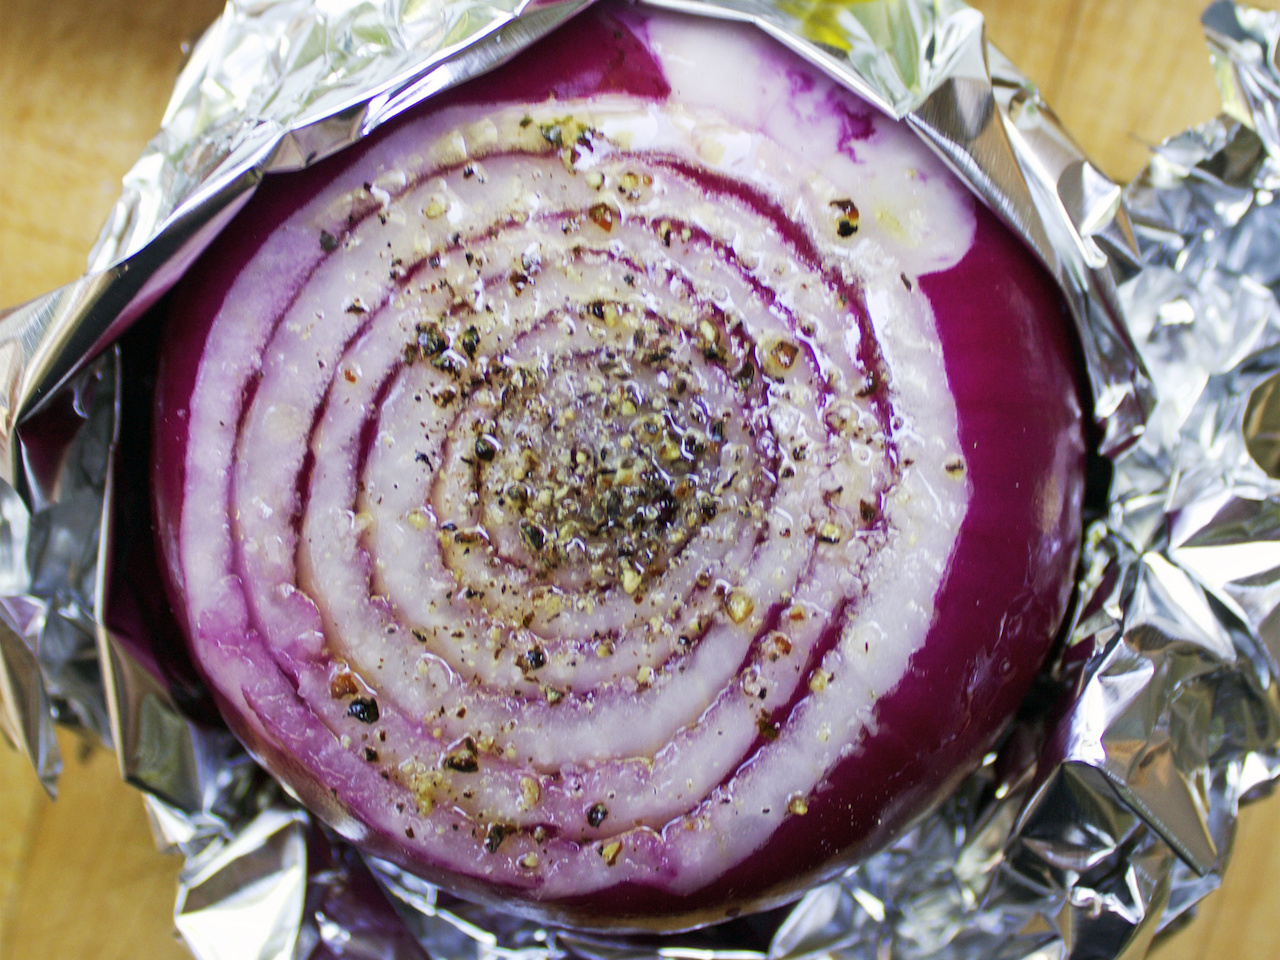 Be sure to wrap your red onion in foil when on the grill.